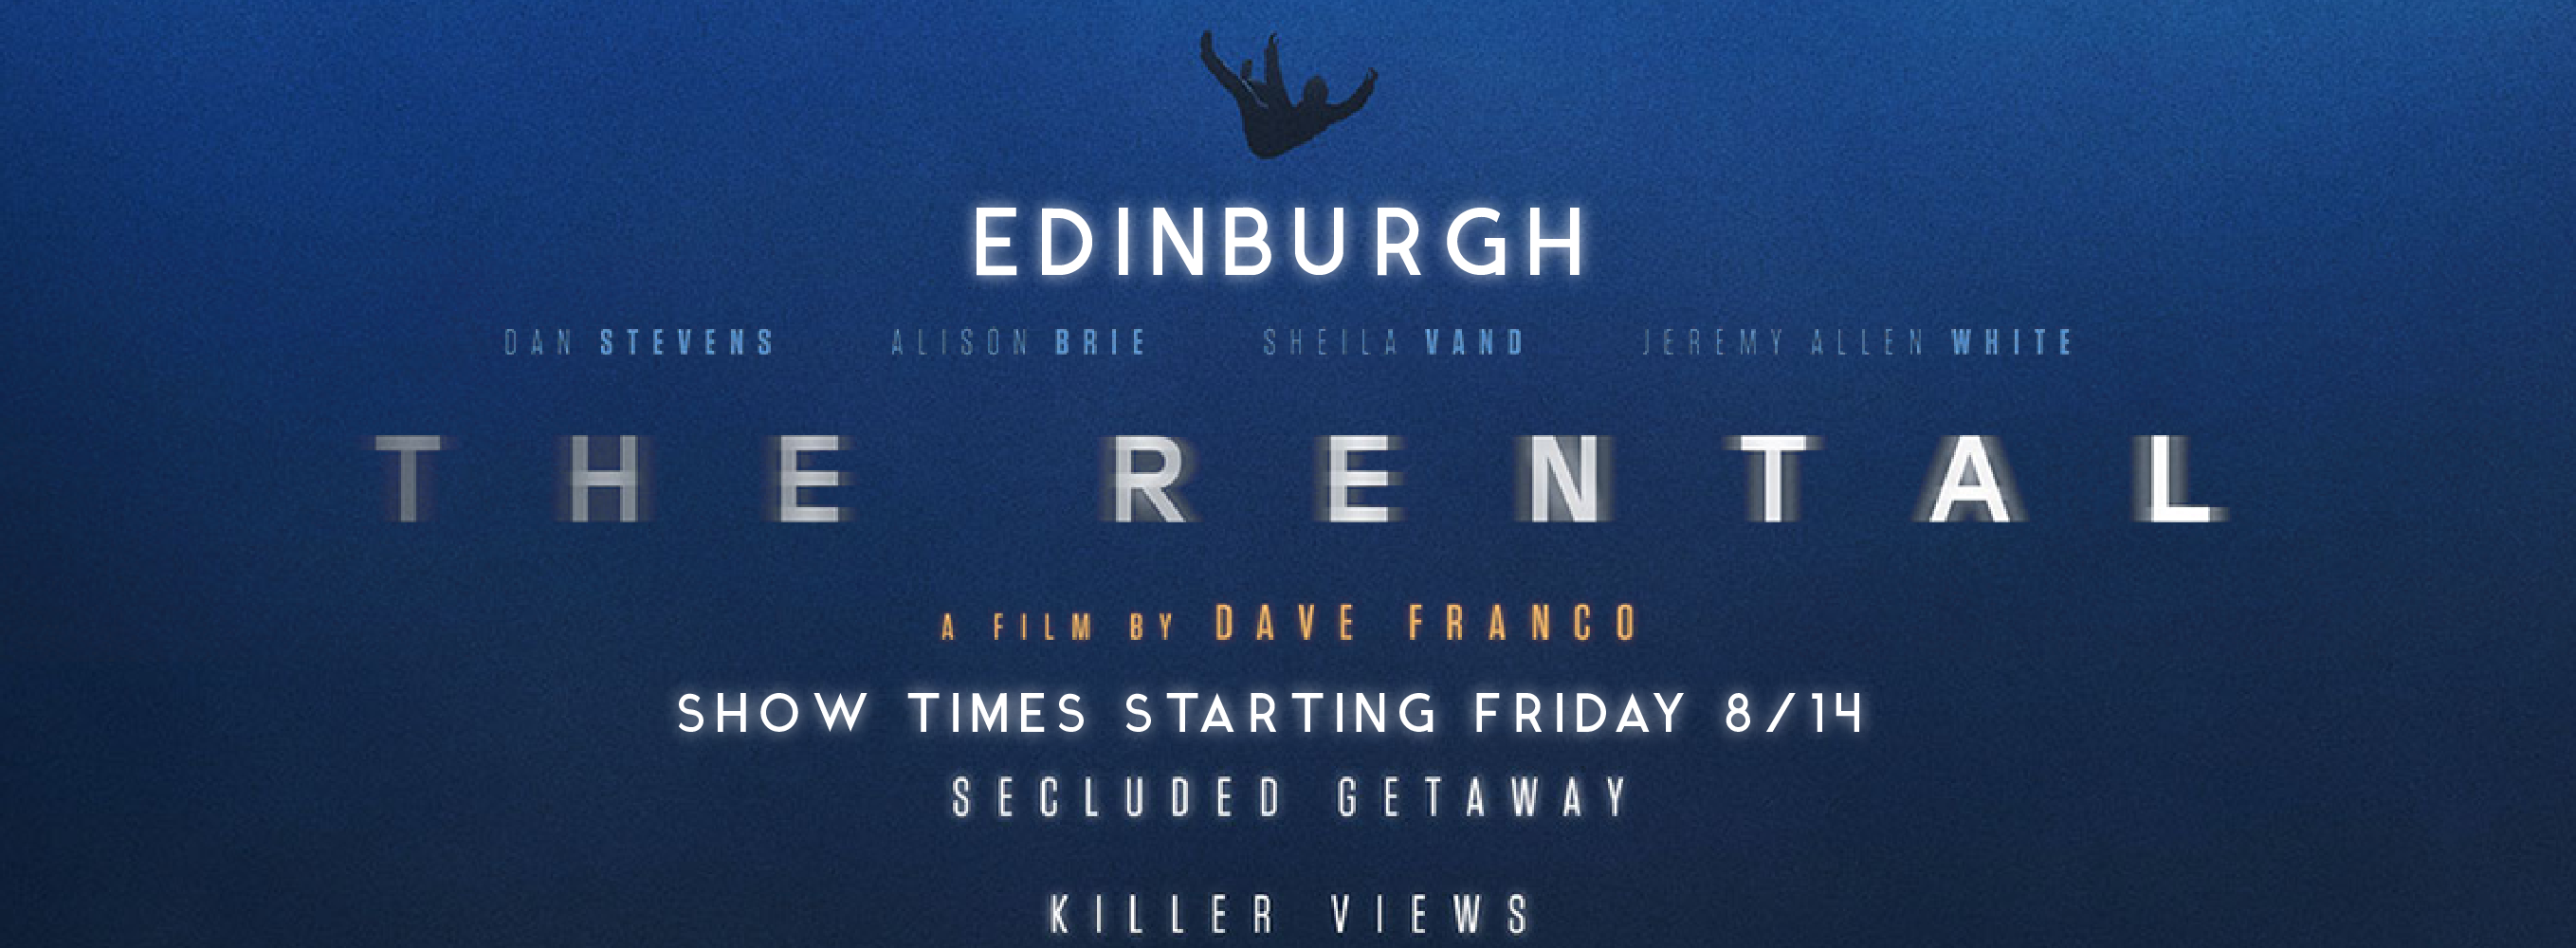 The Rental Coming to Edinburgh Friday 8/14